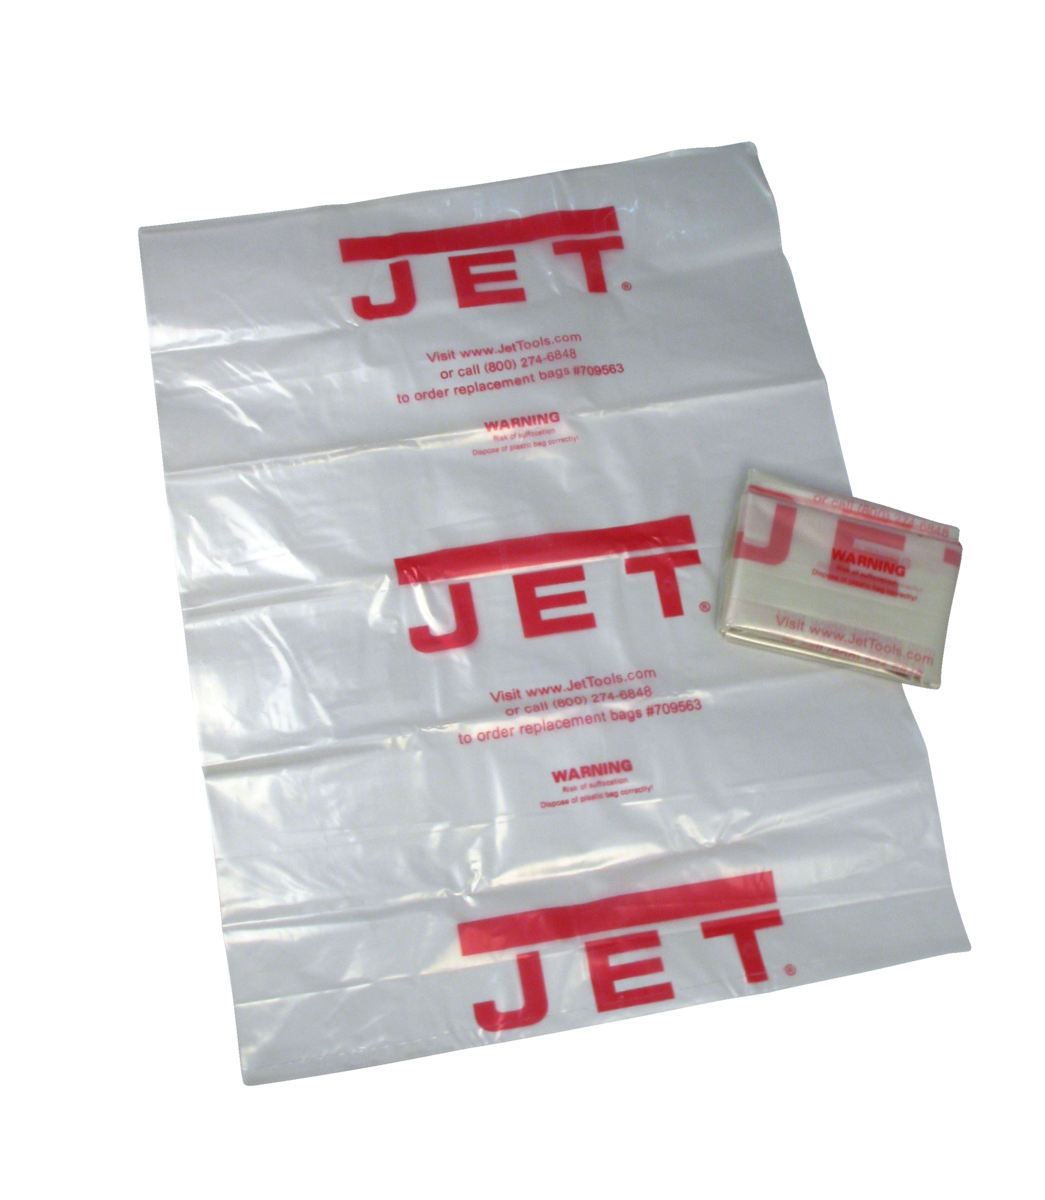 JCDC-3 DRUM COLLECTION BAGS (5)